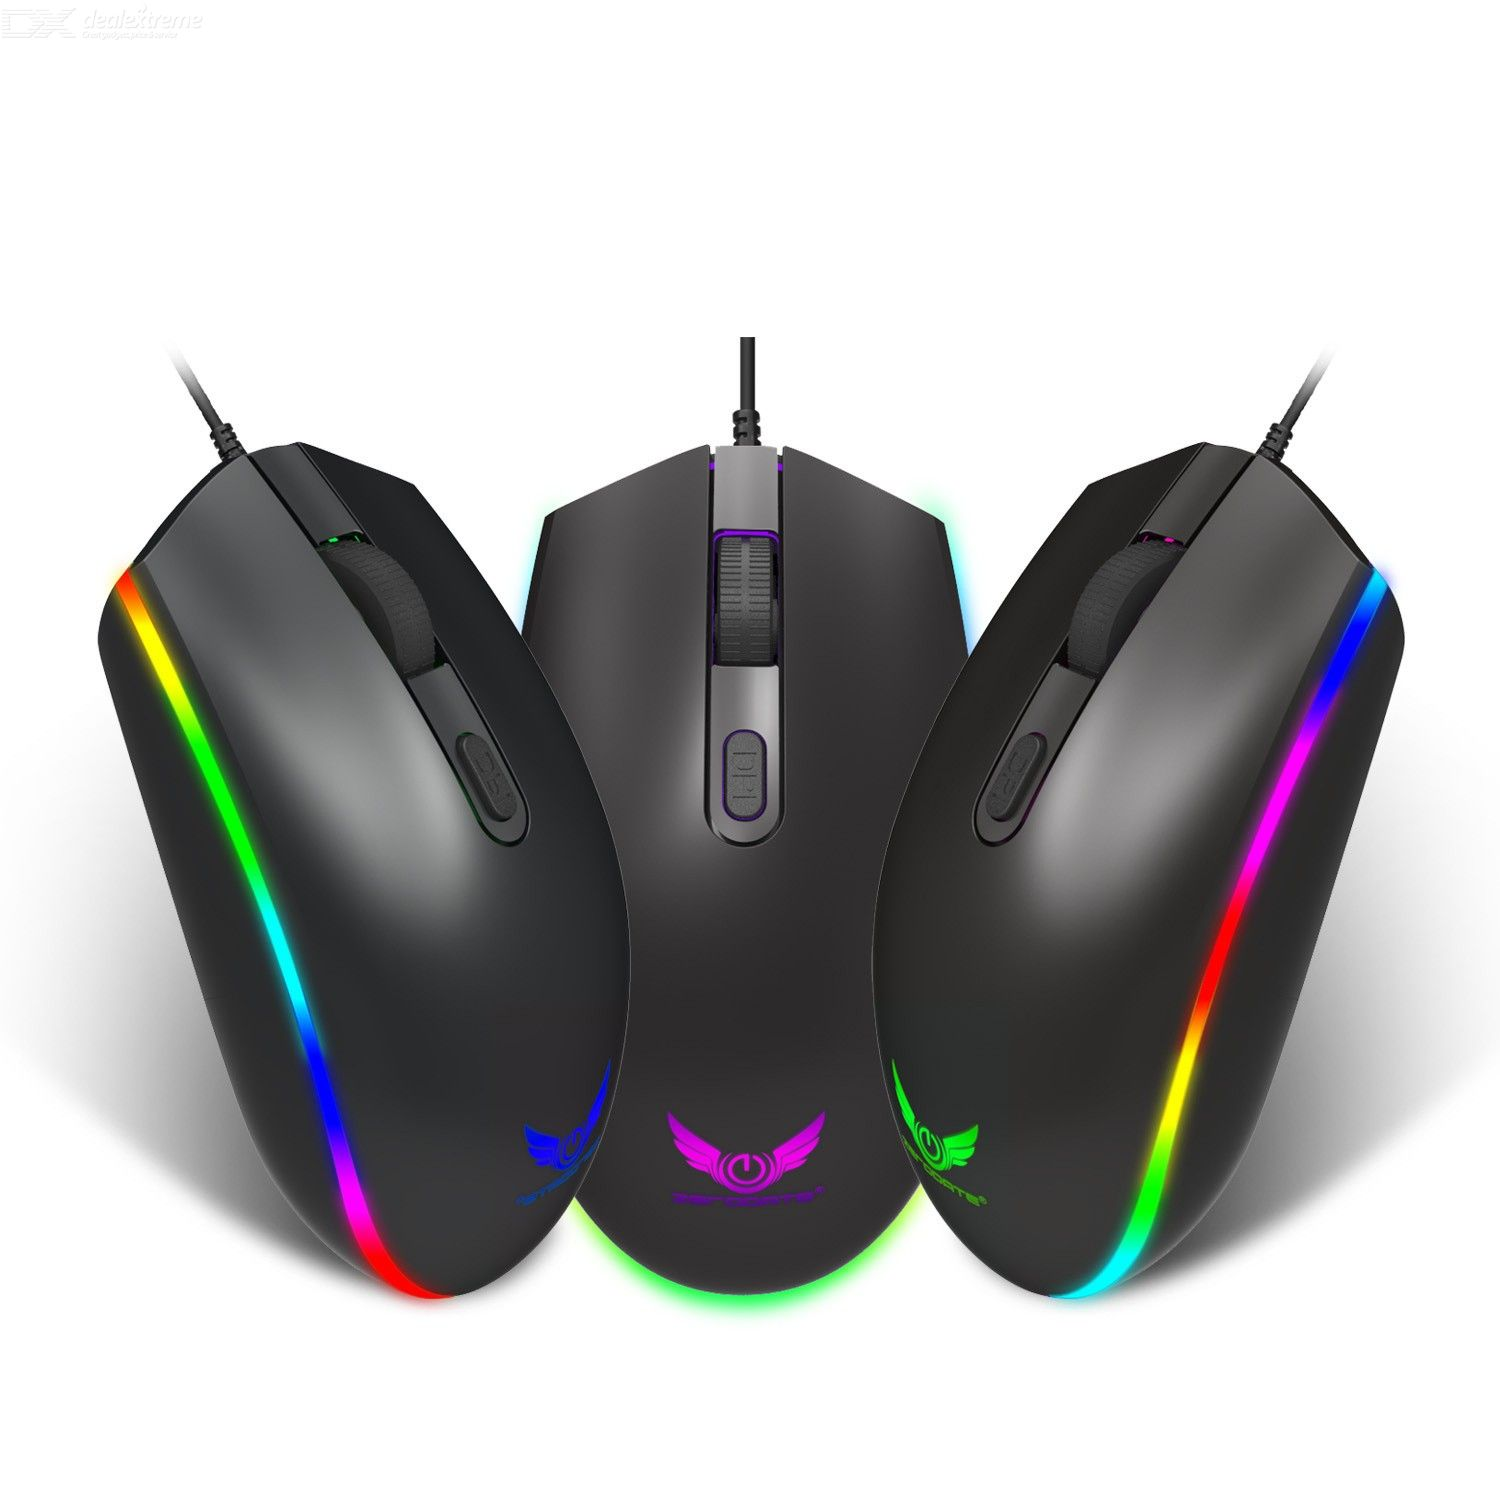 S900 Gaming Mouse 1600DPI 3-level Adjustable Optical Mouse USB 2.0 Wired Optical Gaming Mouse with 4 Buttons